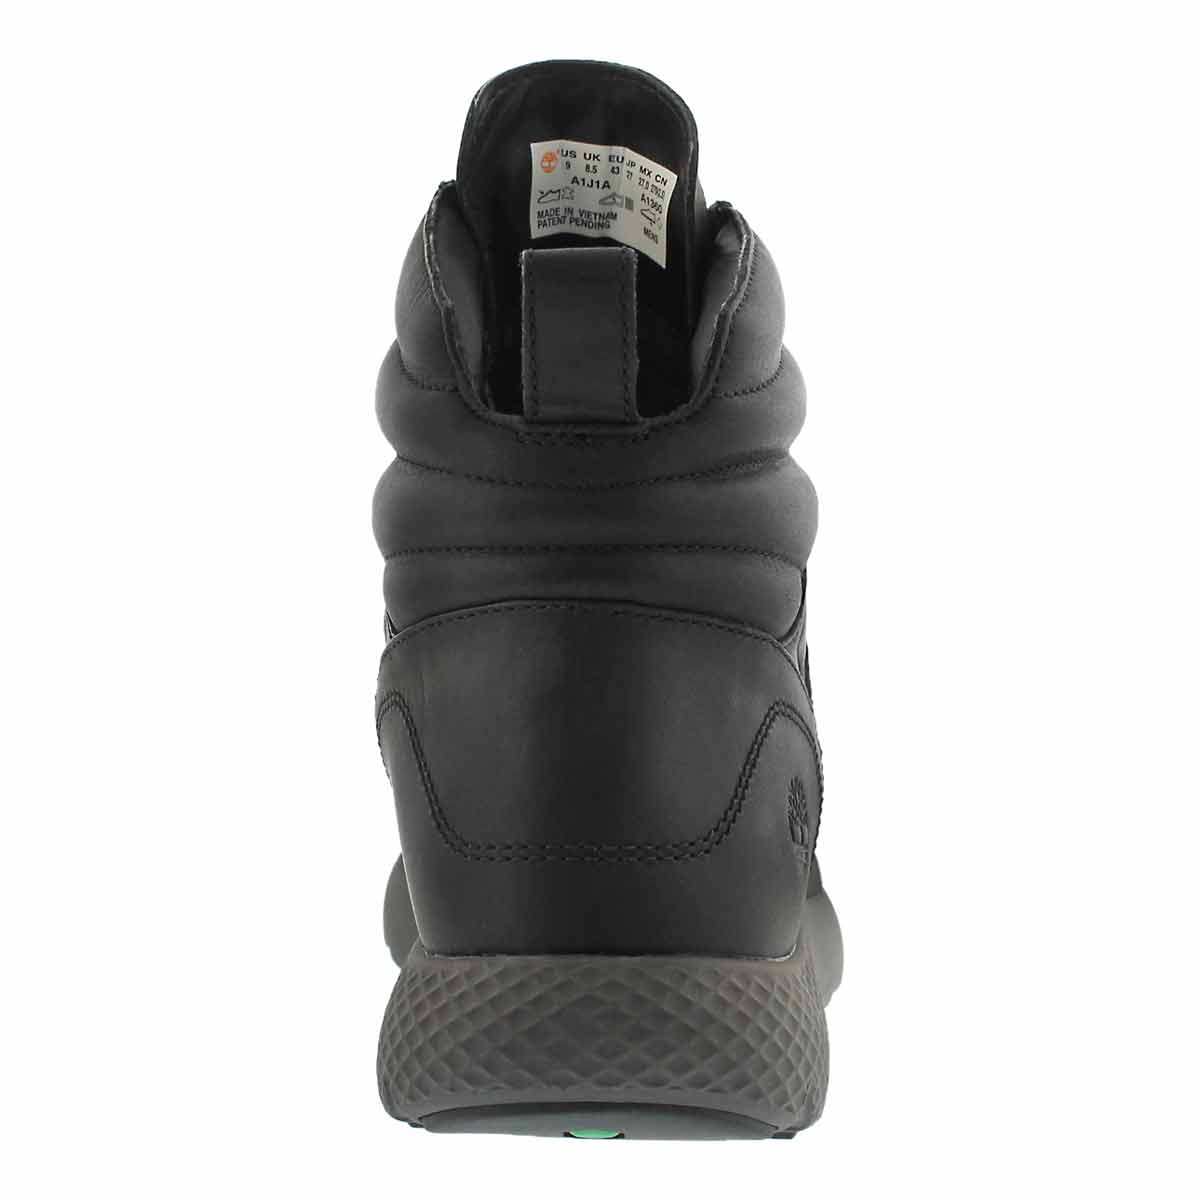 Mns Fly Roam black casual ankle boot